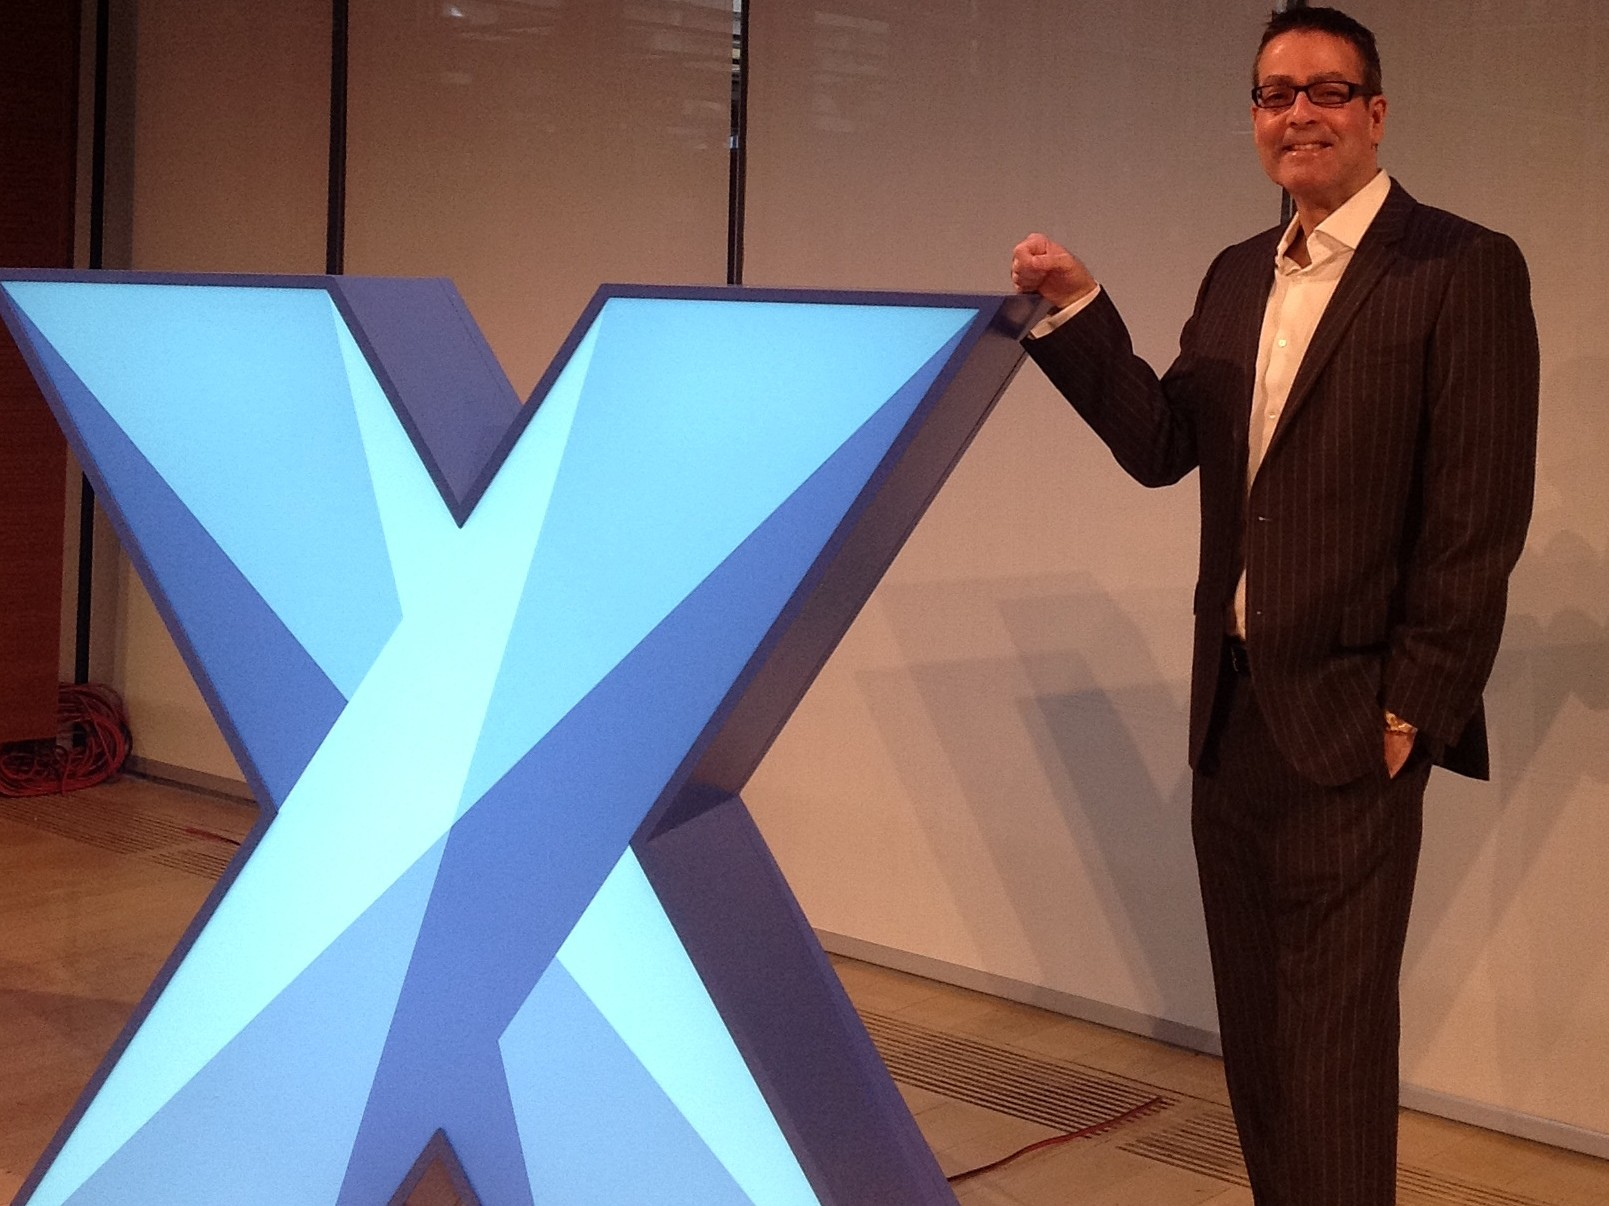 Joe Weinman SVP of cloud services and strategy for Telx